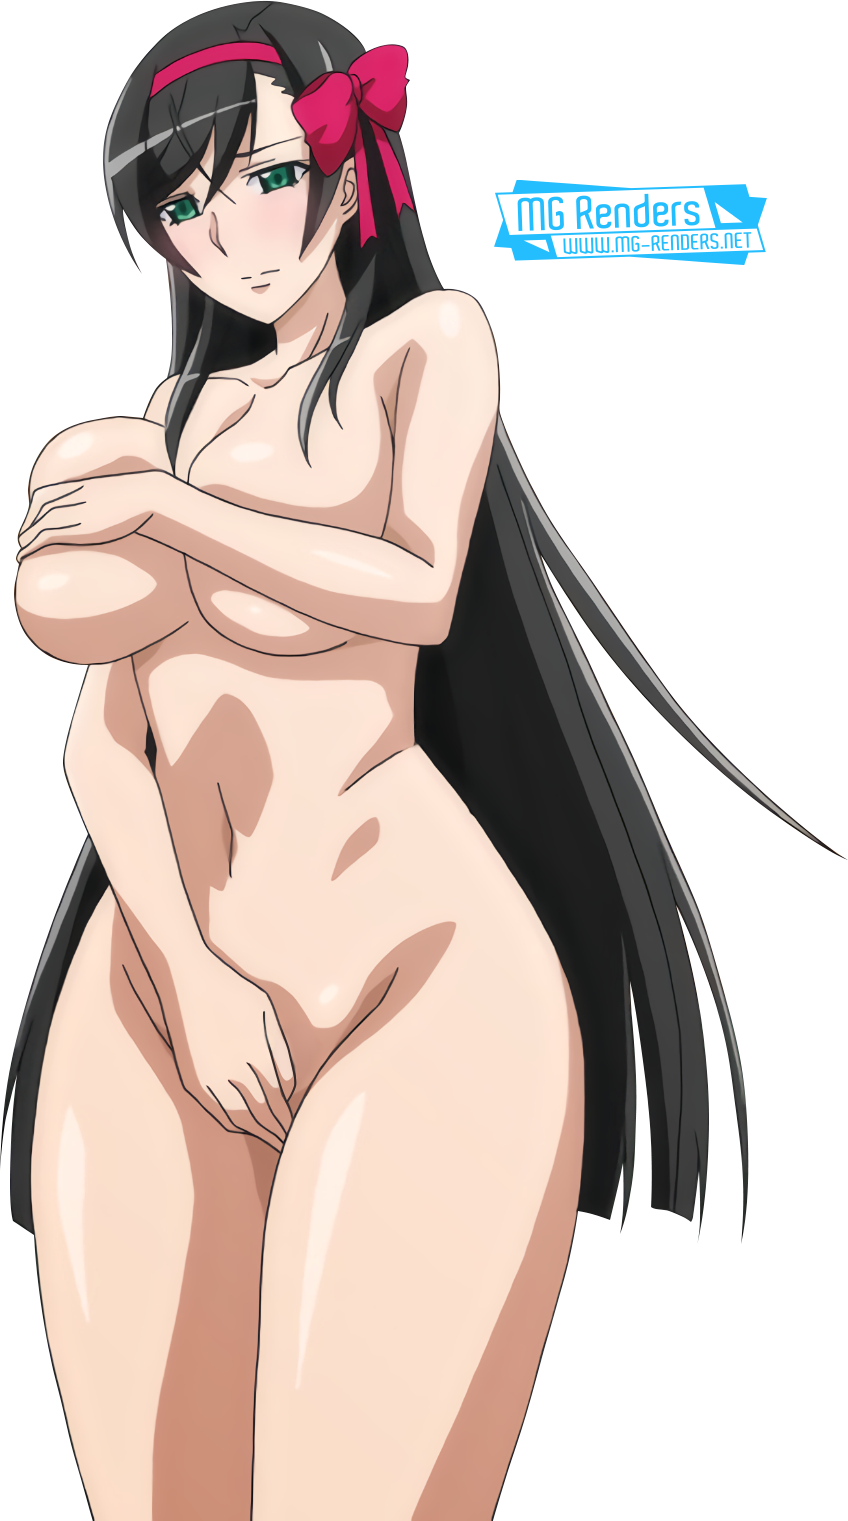 Tags: Anime, Render,  Akimiya Sayaka,  Huge Breasts,  No bra,  Rinkan Biyaku Chuudoku,  PNG, Image, Picture